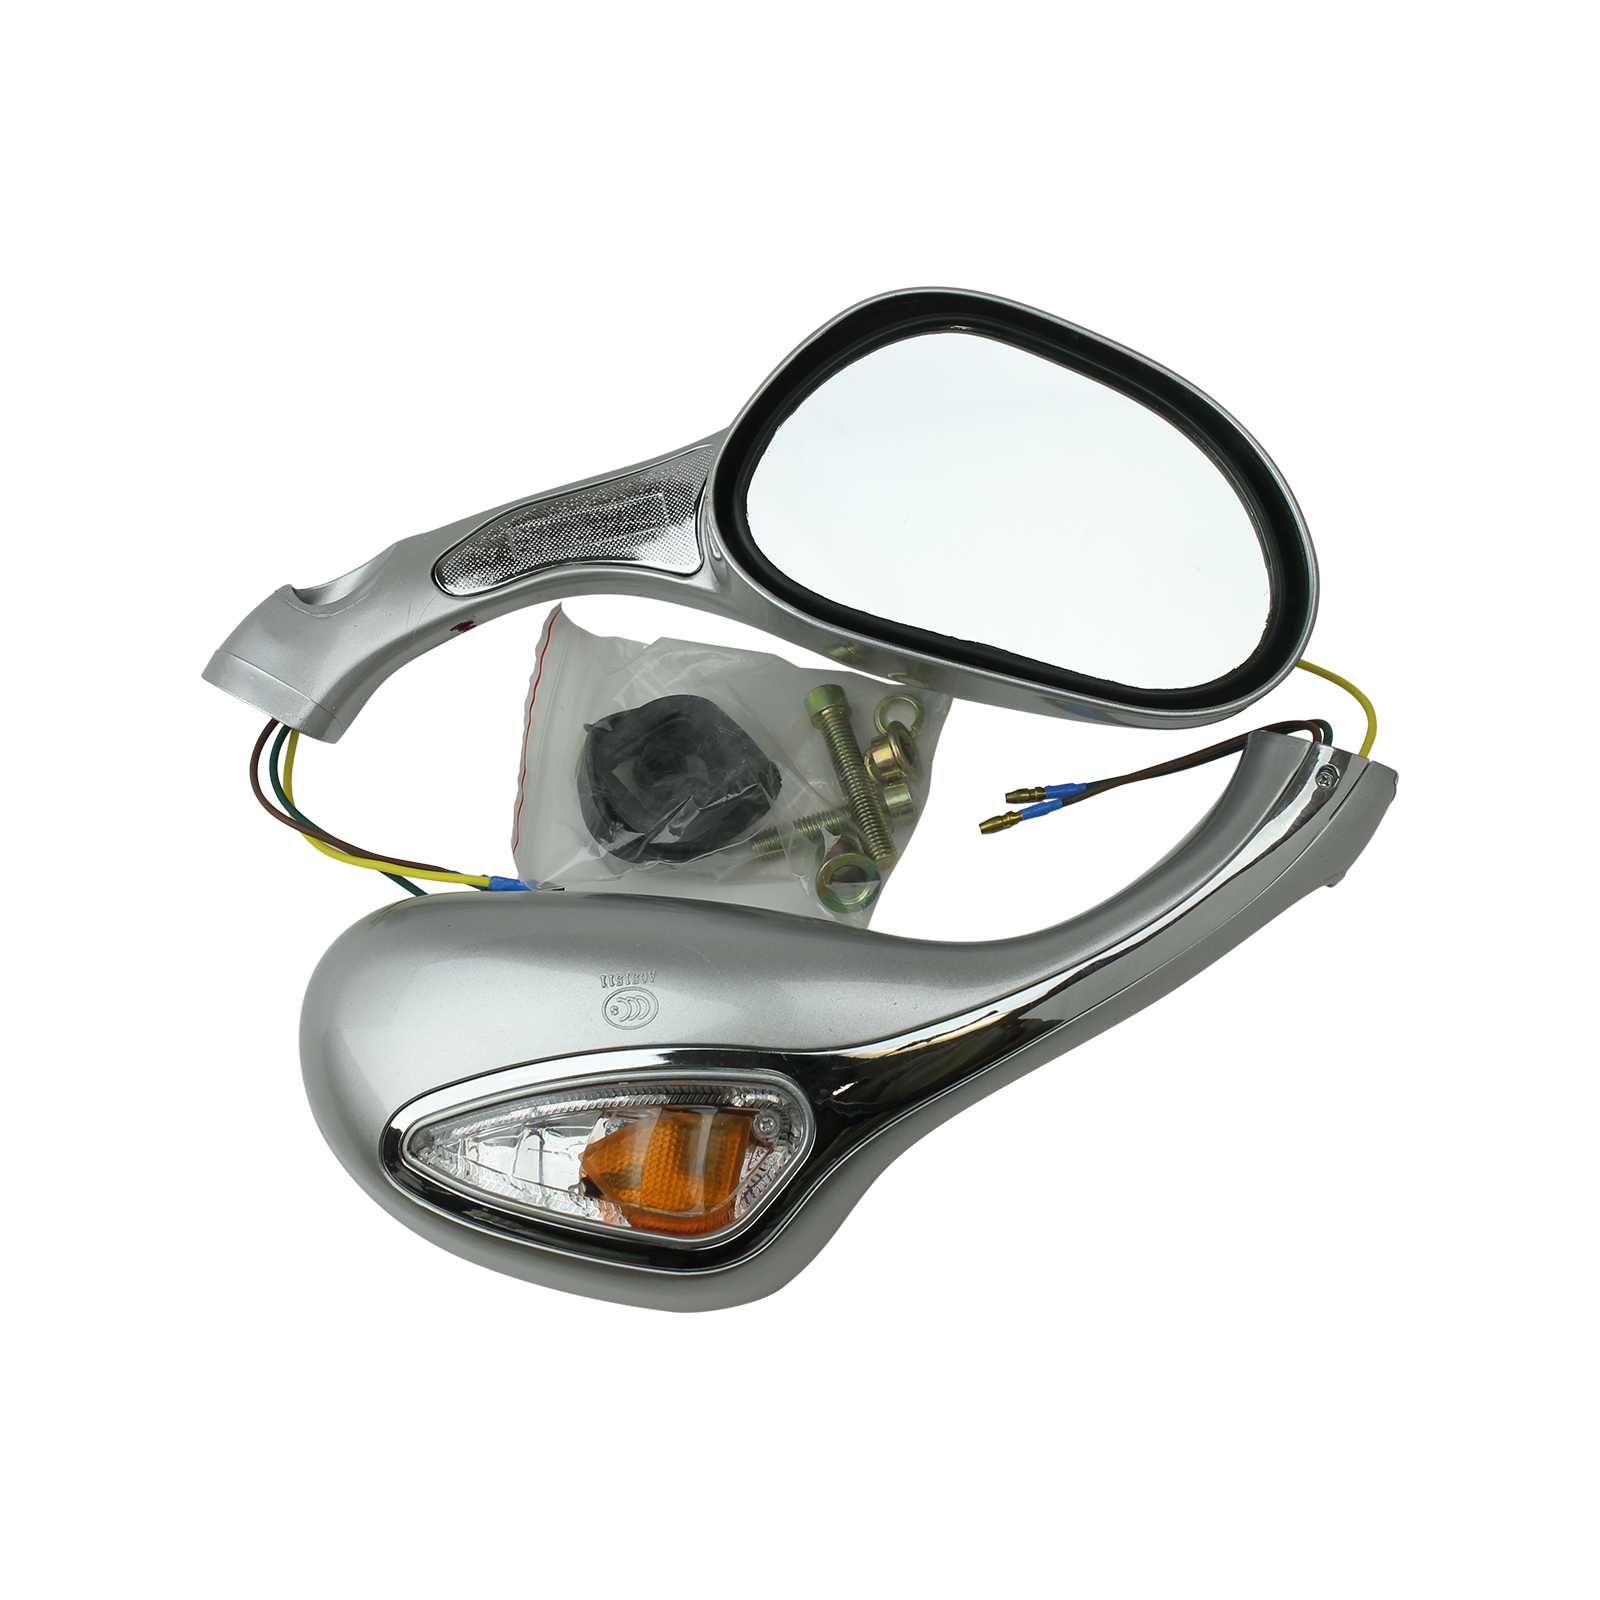 pair GOOFIT 8mm Black Rear View Mirror for GY6 50cc 125cc 150cc 250cc Scooter Moped Motorcycle